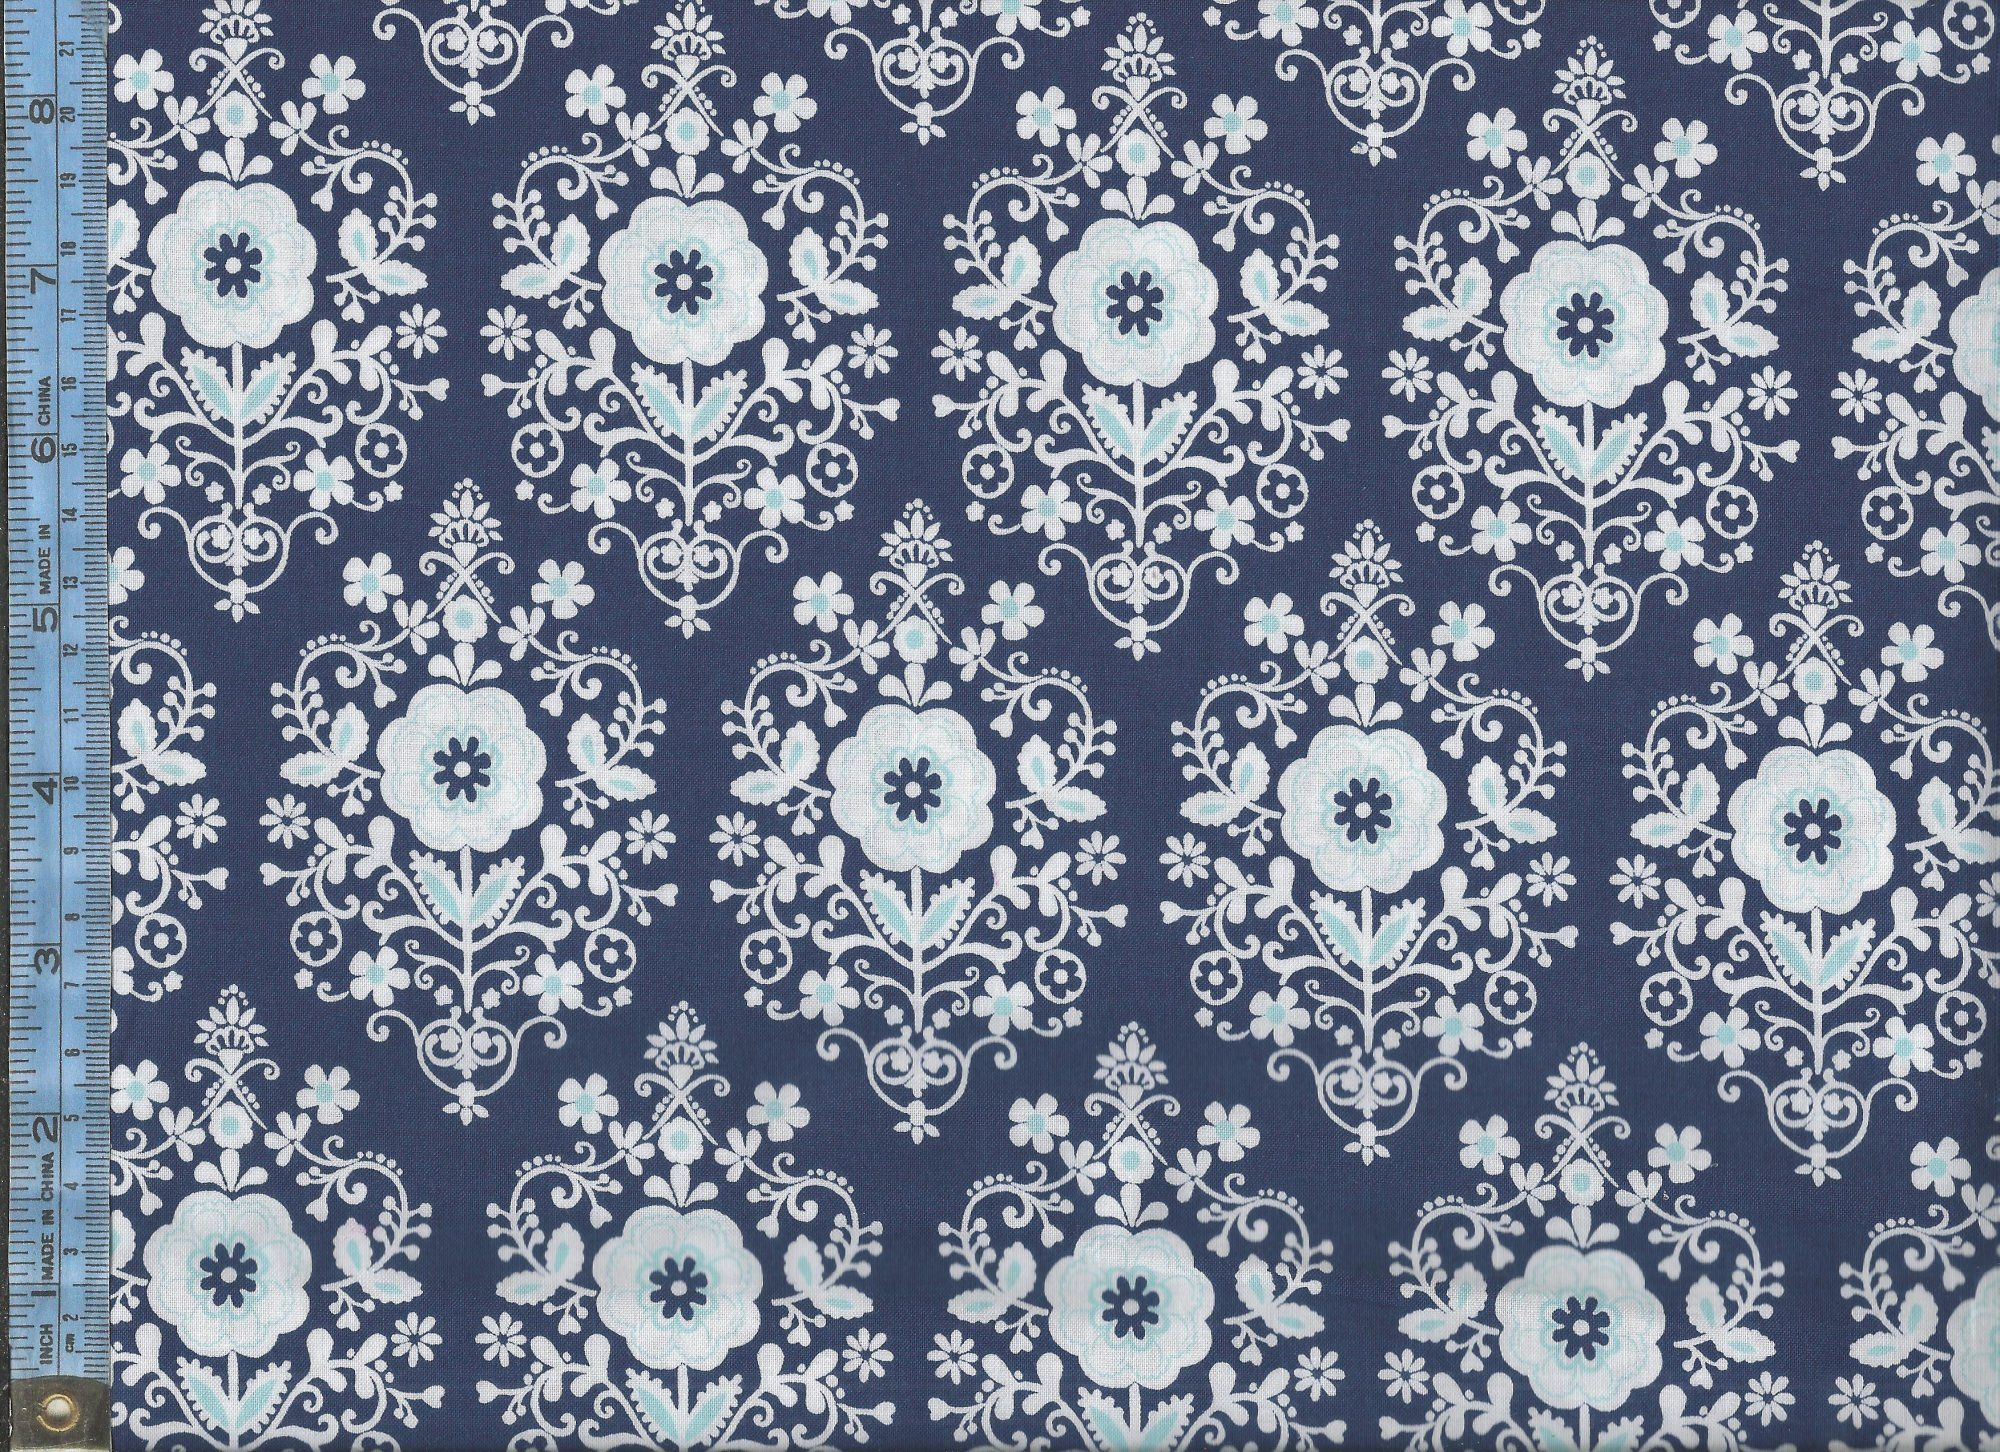 butter cream light blue and white floral damask design on navy